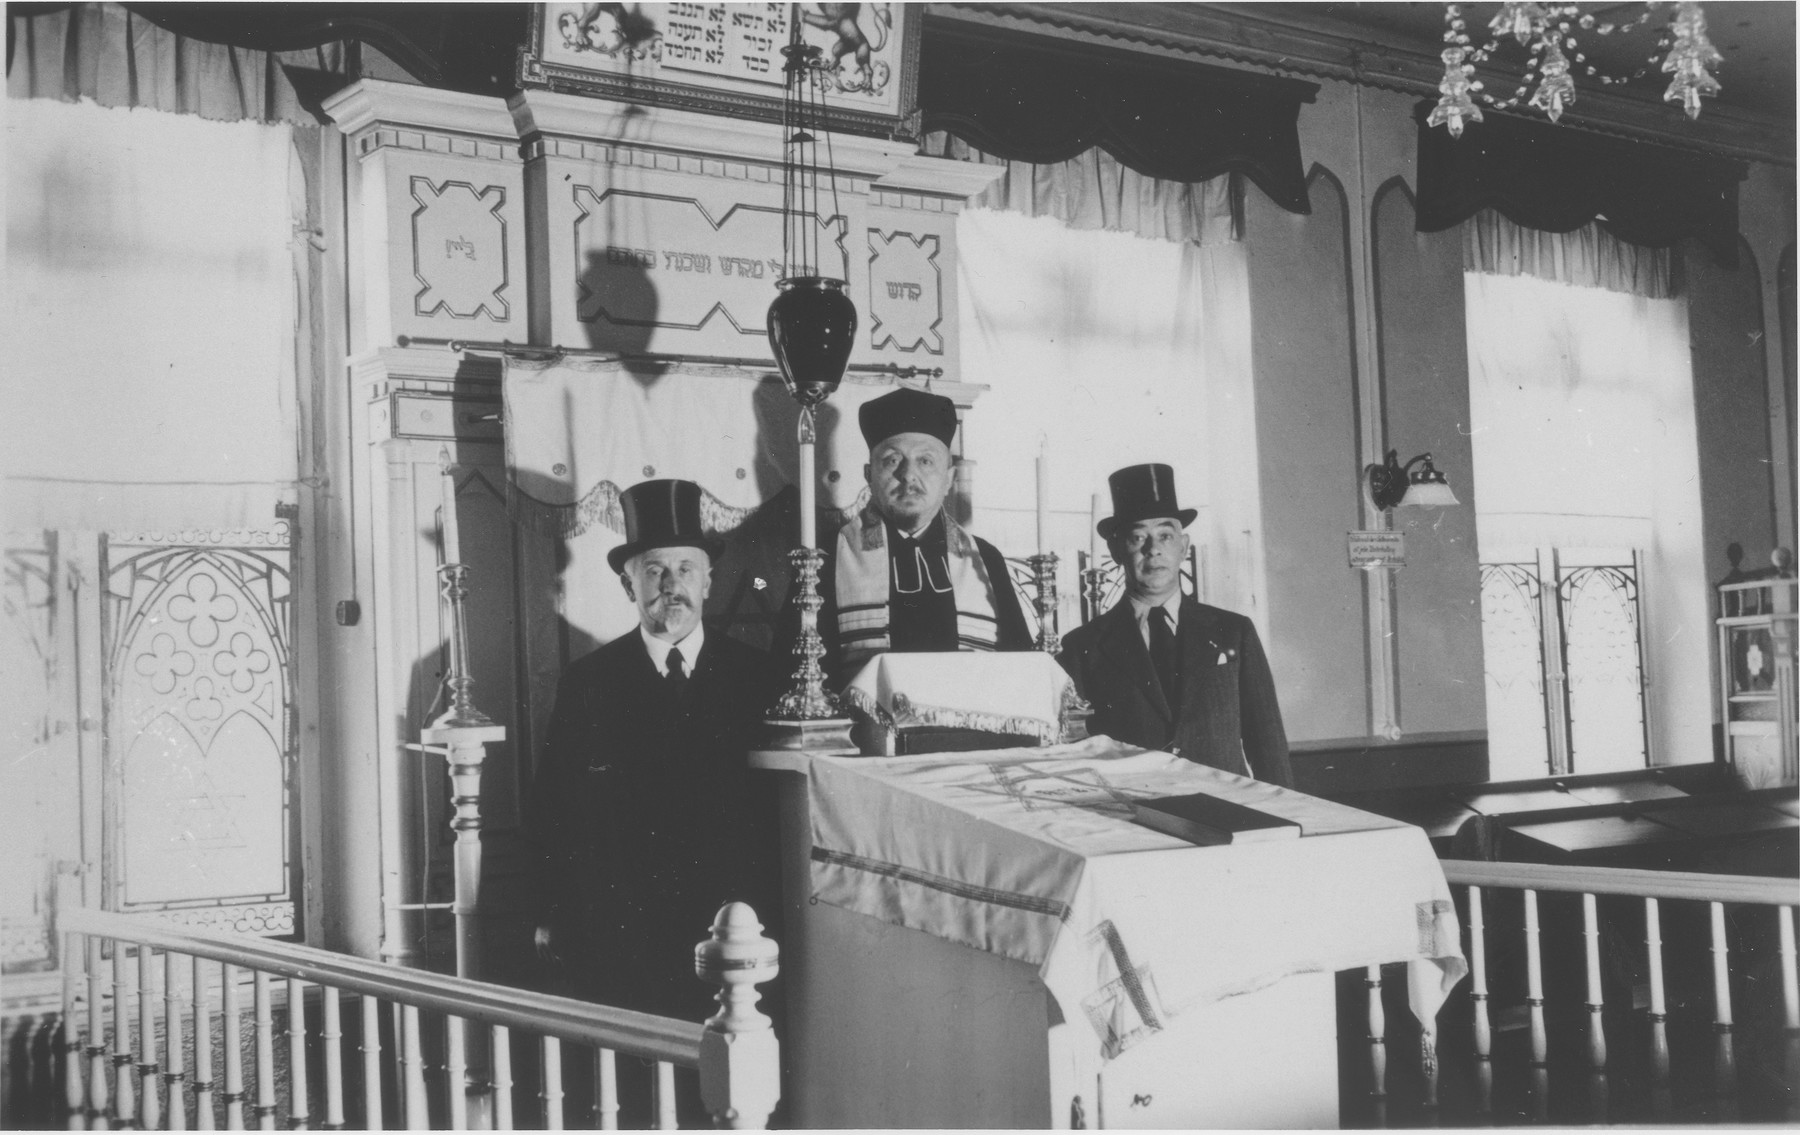 Three synagogue officials, including the rabbi and cantor, pose on the bimah [podium] in the sanctuary of the Striegau synagogue.